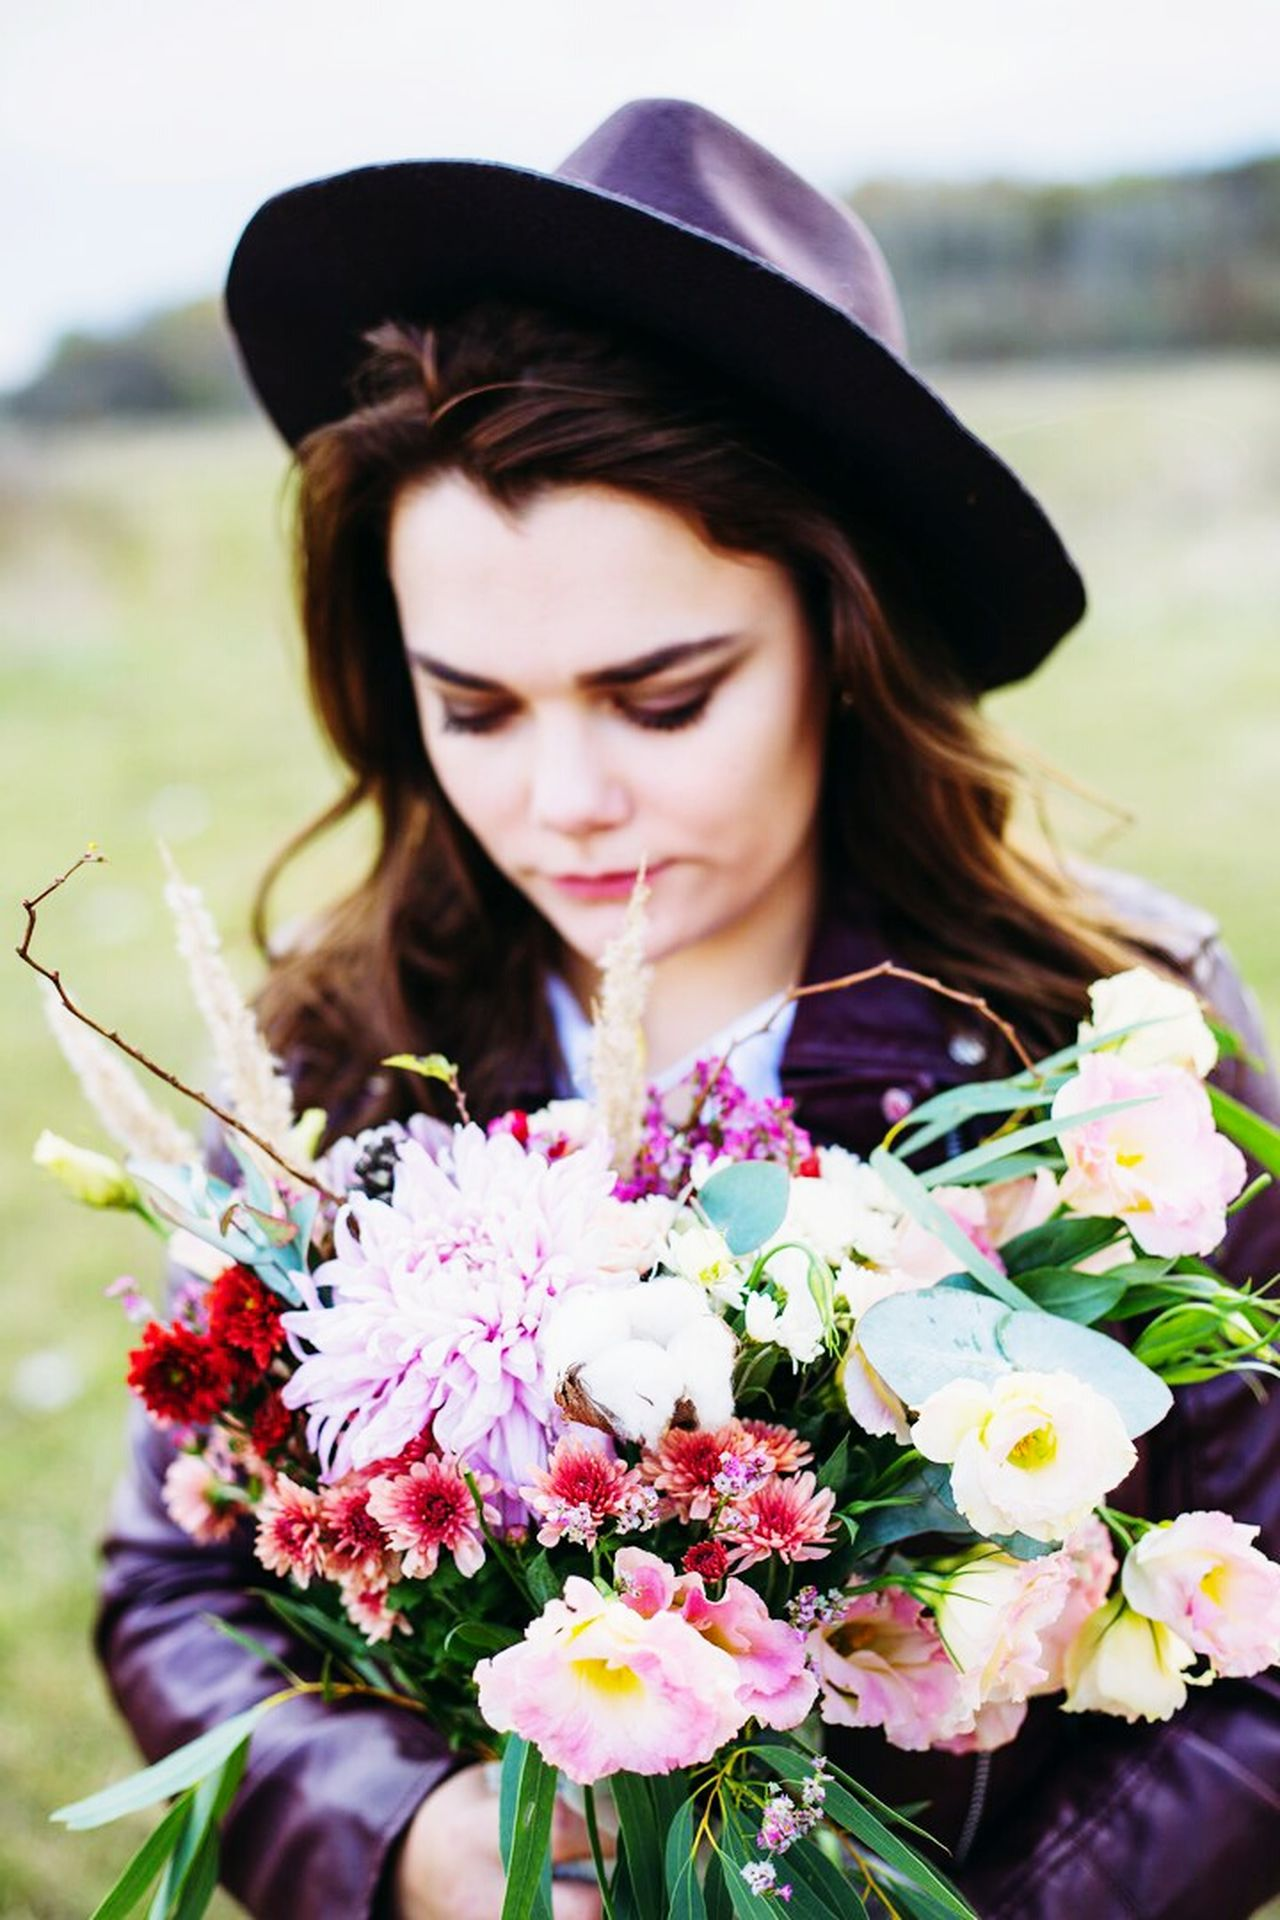 Flower Bouquet Summer Adult Scented One Woman Only Beautiful Woman Rose - Flower Women Flower Head Beautiful People Nature Adults Only Looking Down Beauty Lavender Only Women Blossom Bunch Of Flowers Young Adult